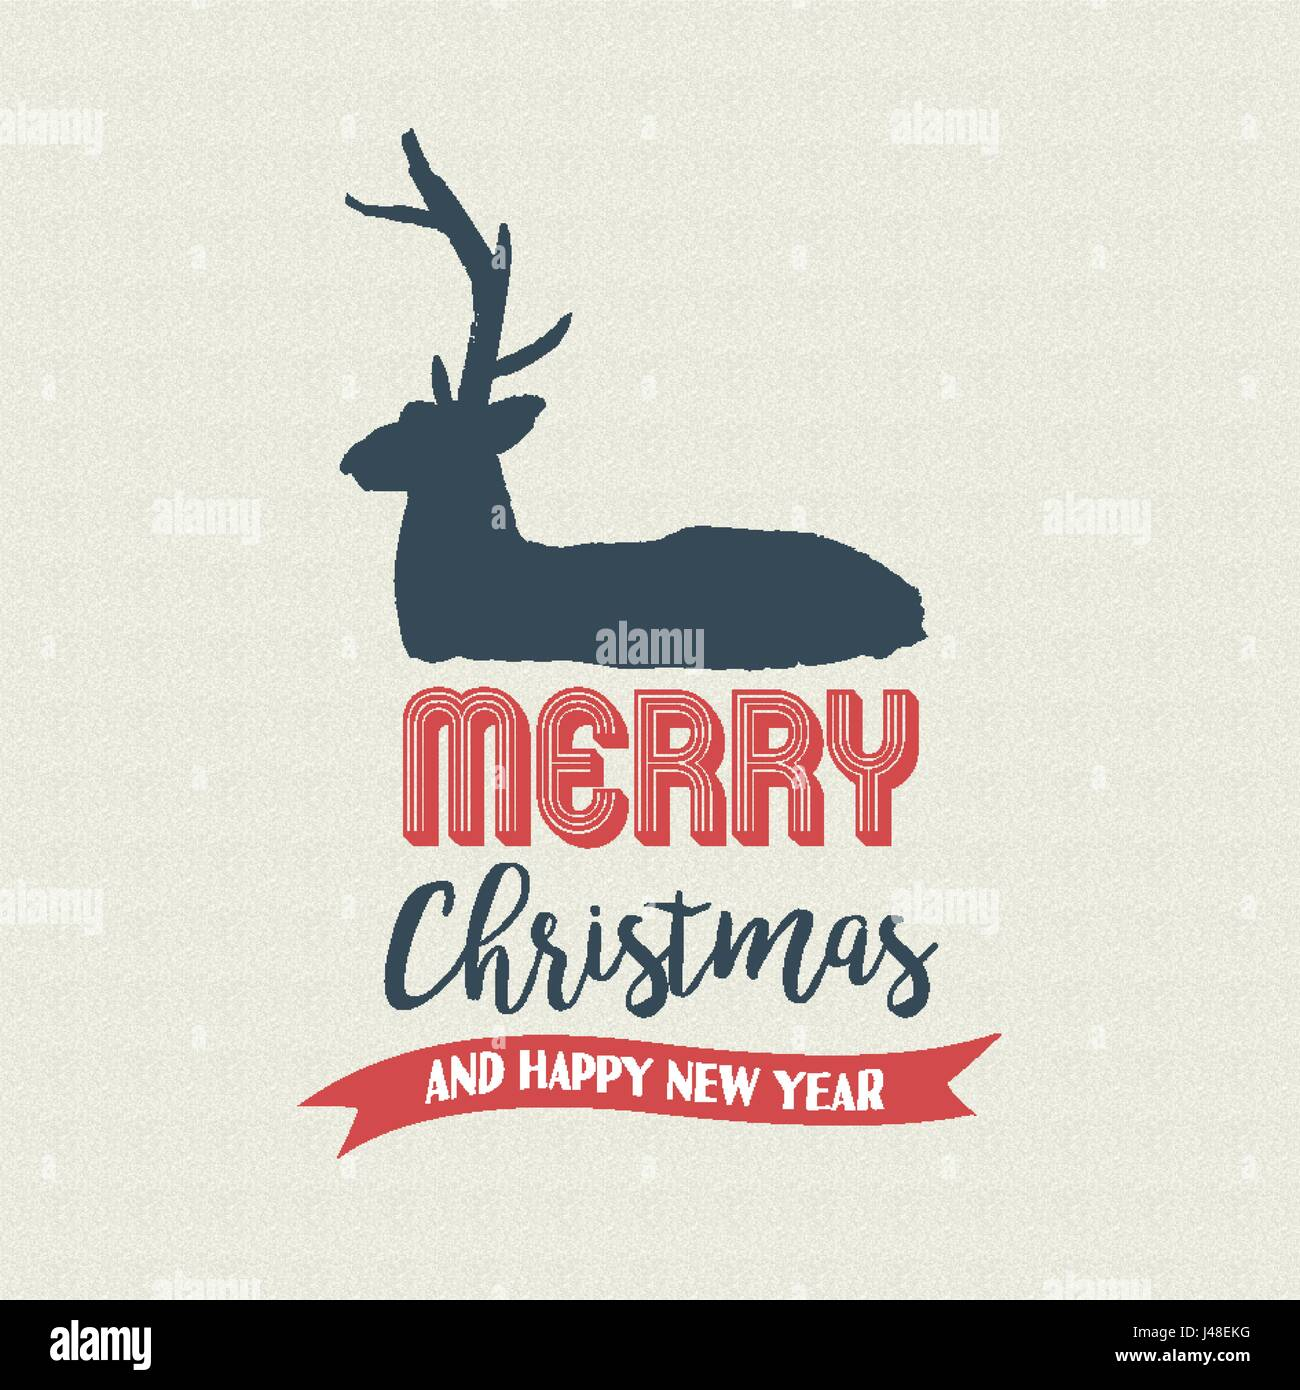 Merry Christmas deer text quote, calligraphy lettering design for holiday season. Creative vintage typography font Stock Vector